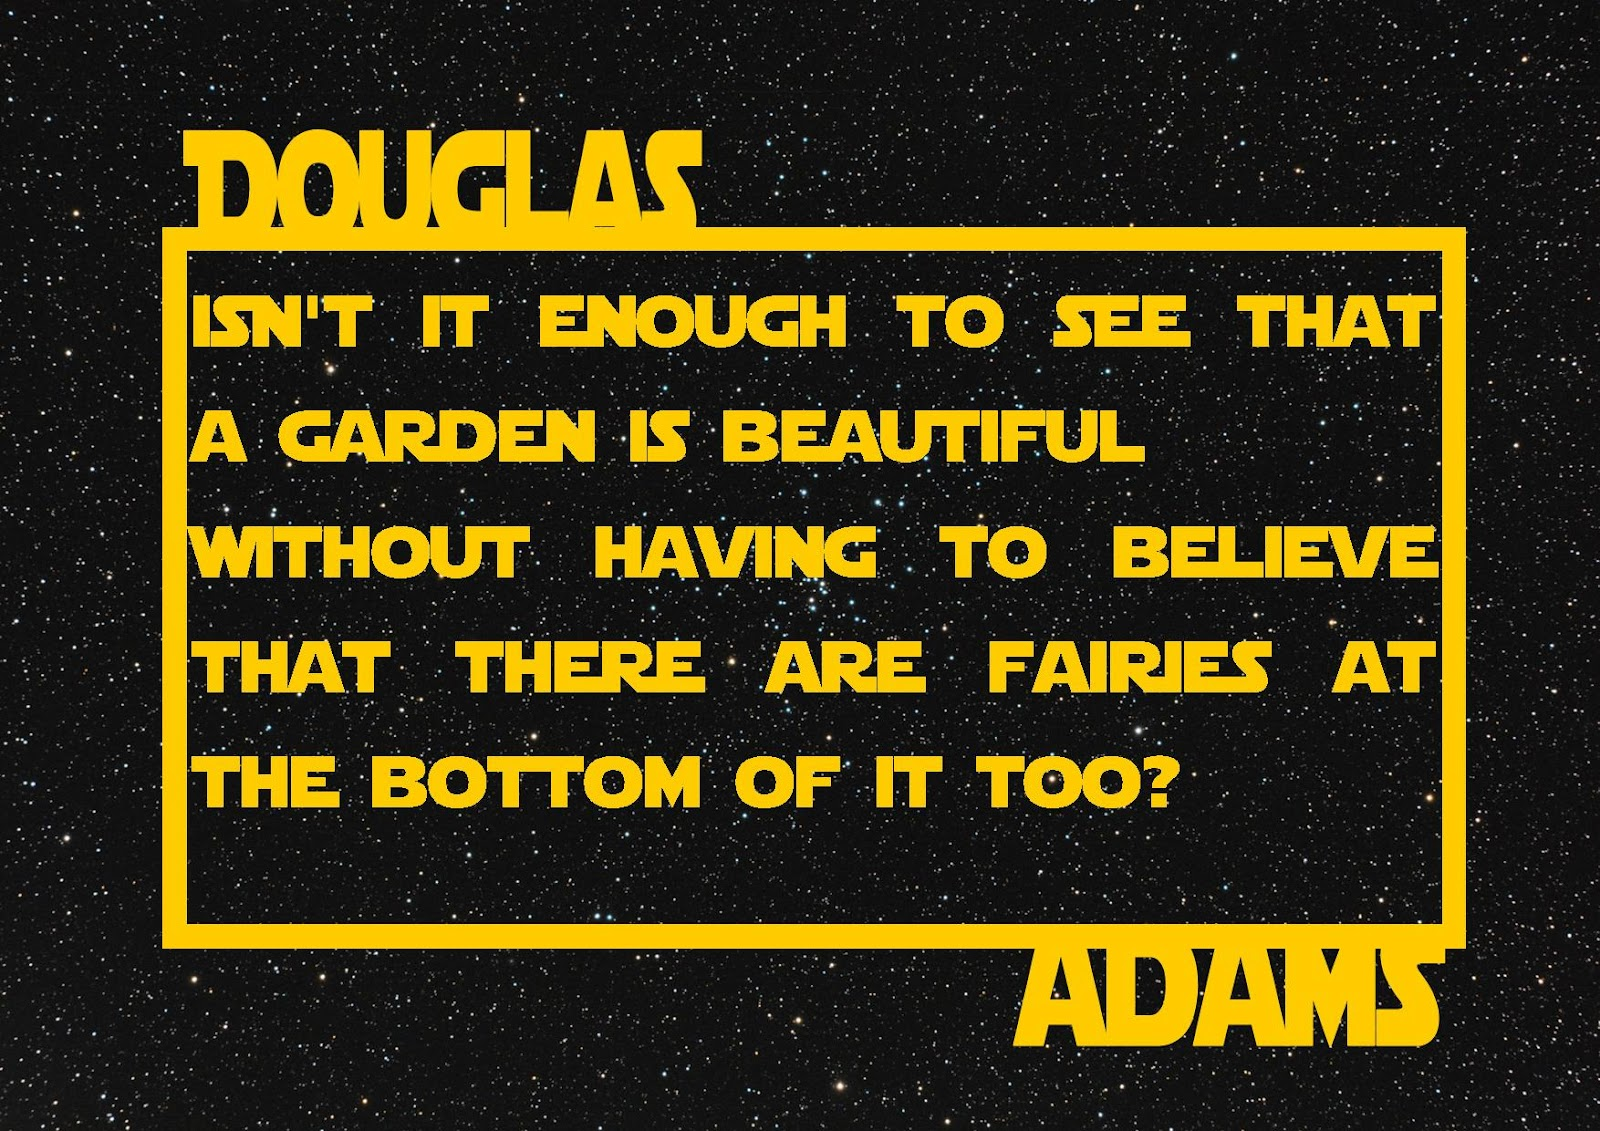 ... Is It Canon?: Douglas Adams 60th - Any excuse to show this quote